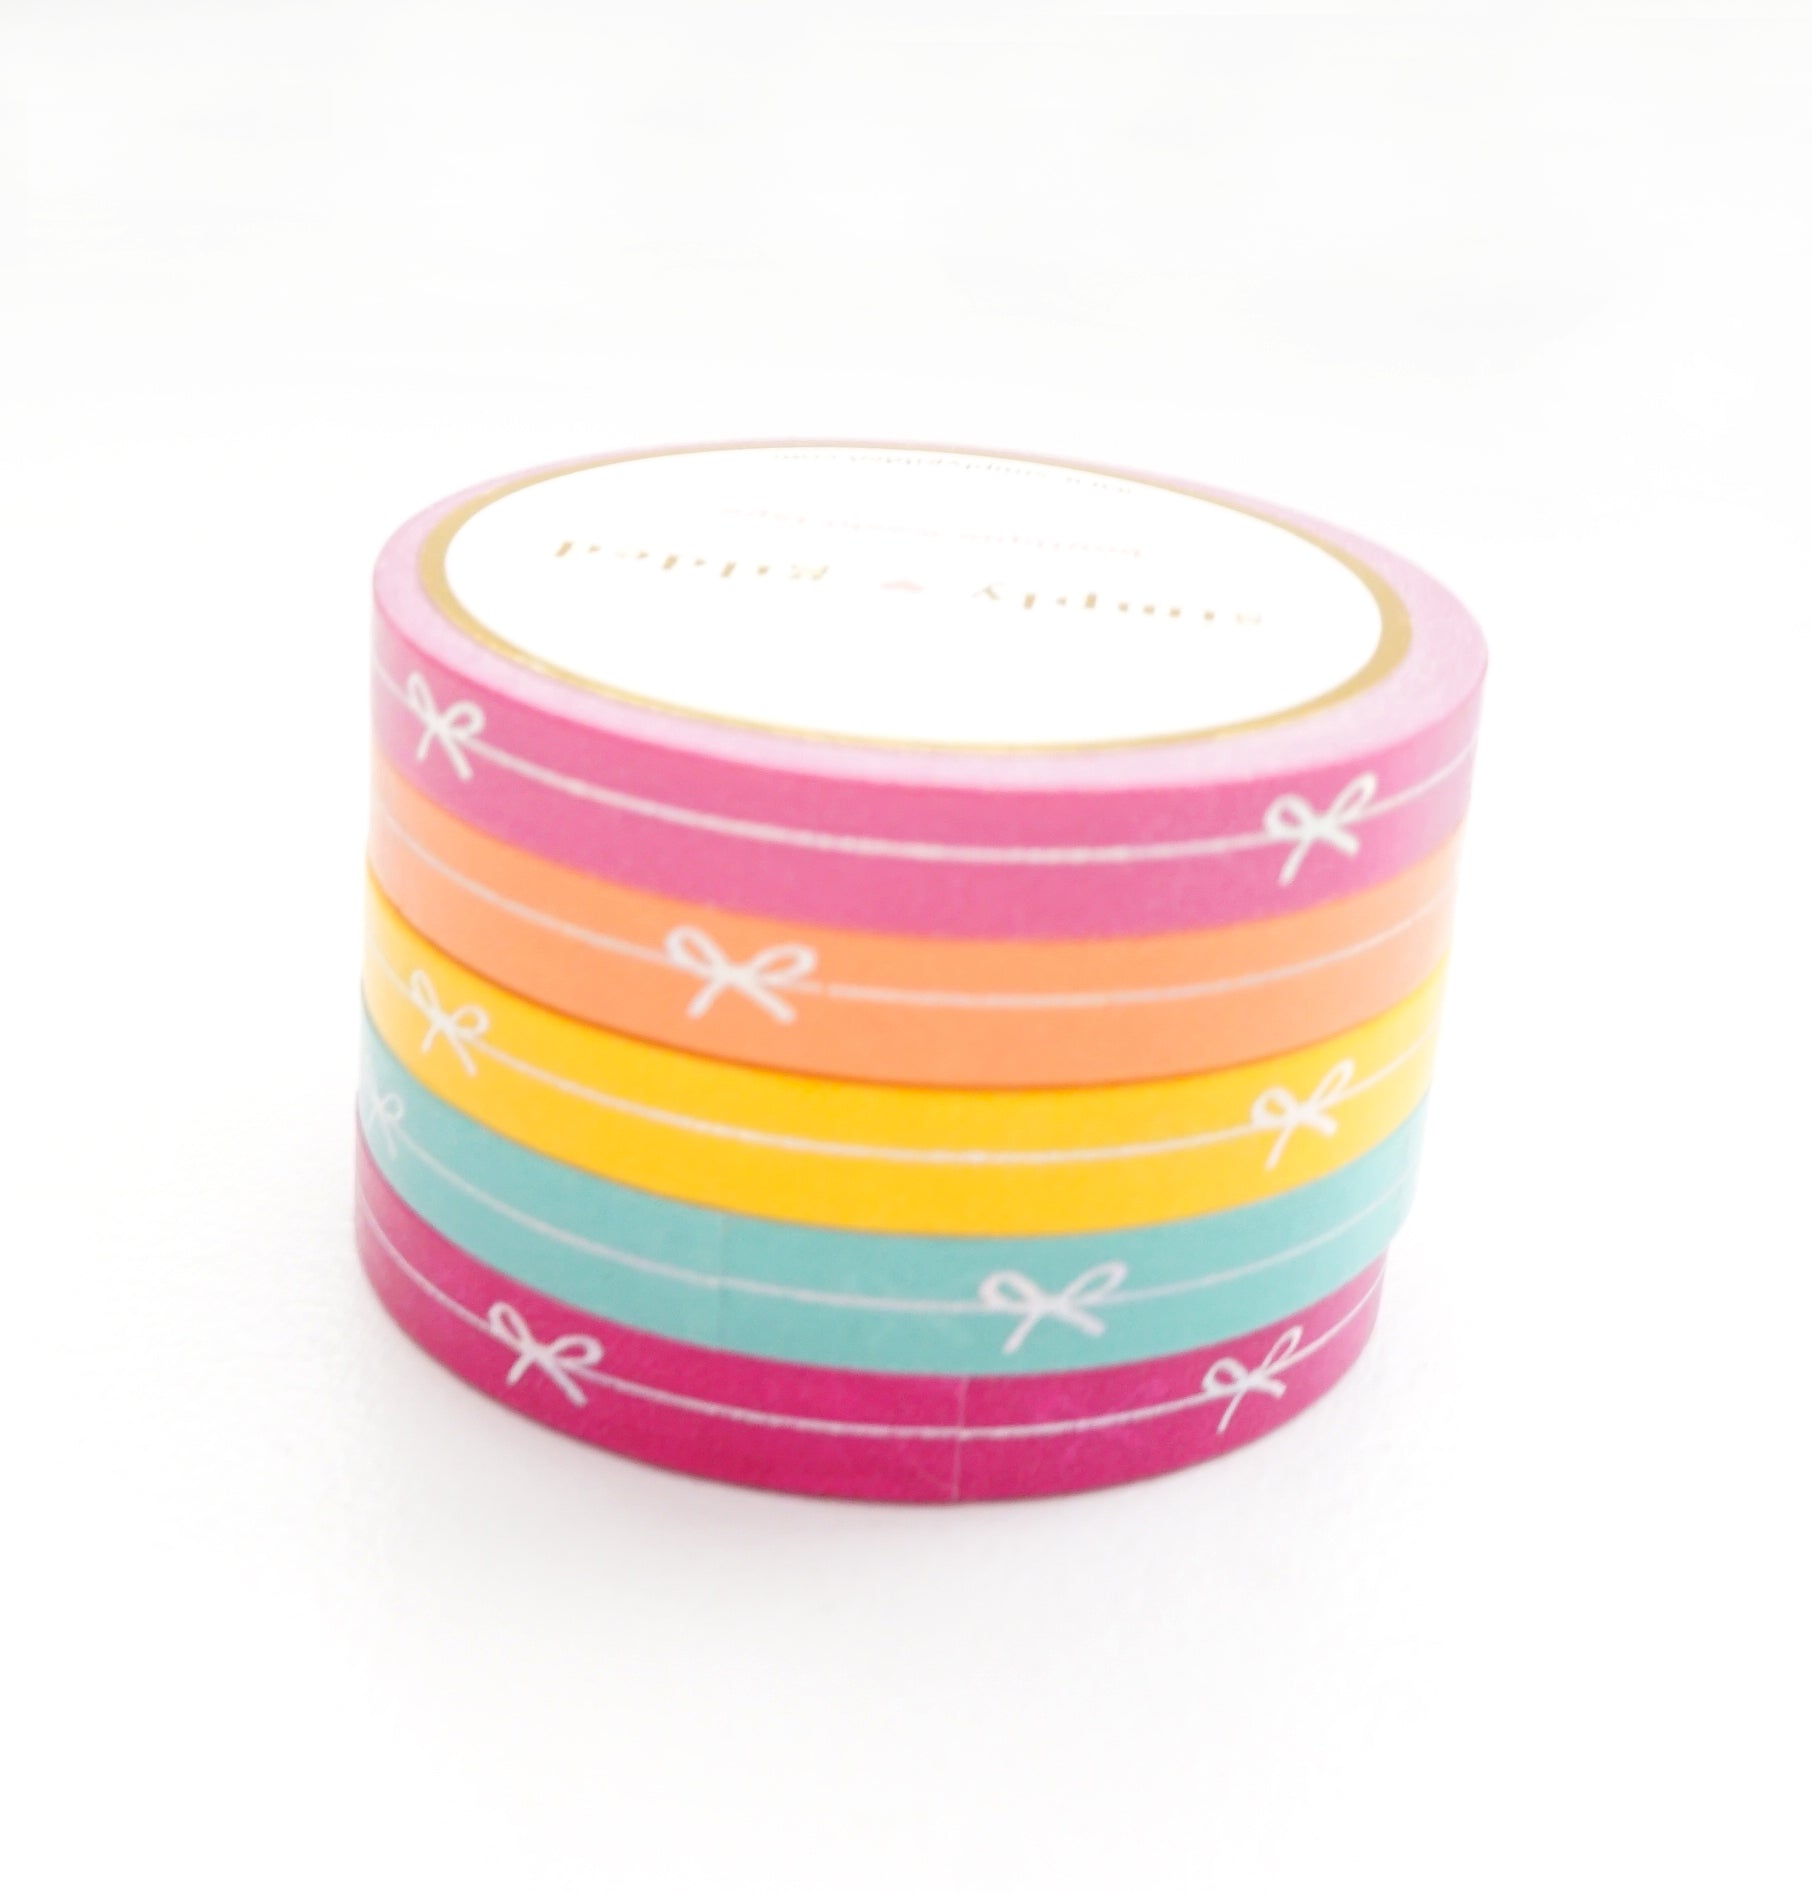 PERFORATED WASHI TAPE 6mm set of 5 - Funky & Fresh PERFORATED SIMPLE BOW LINE + silver holographic foil (May Release, Presale) LIMIT of 2